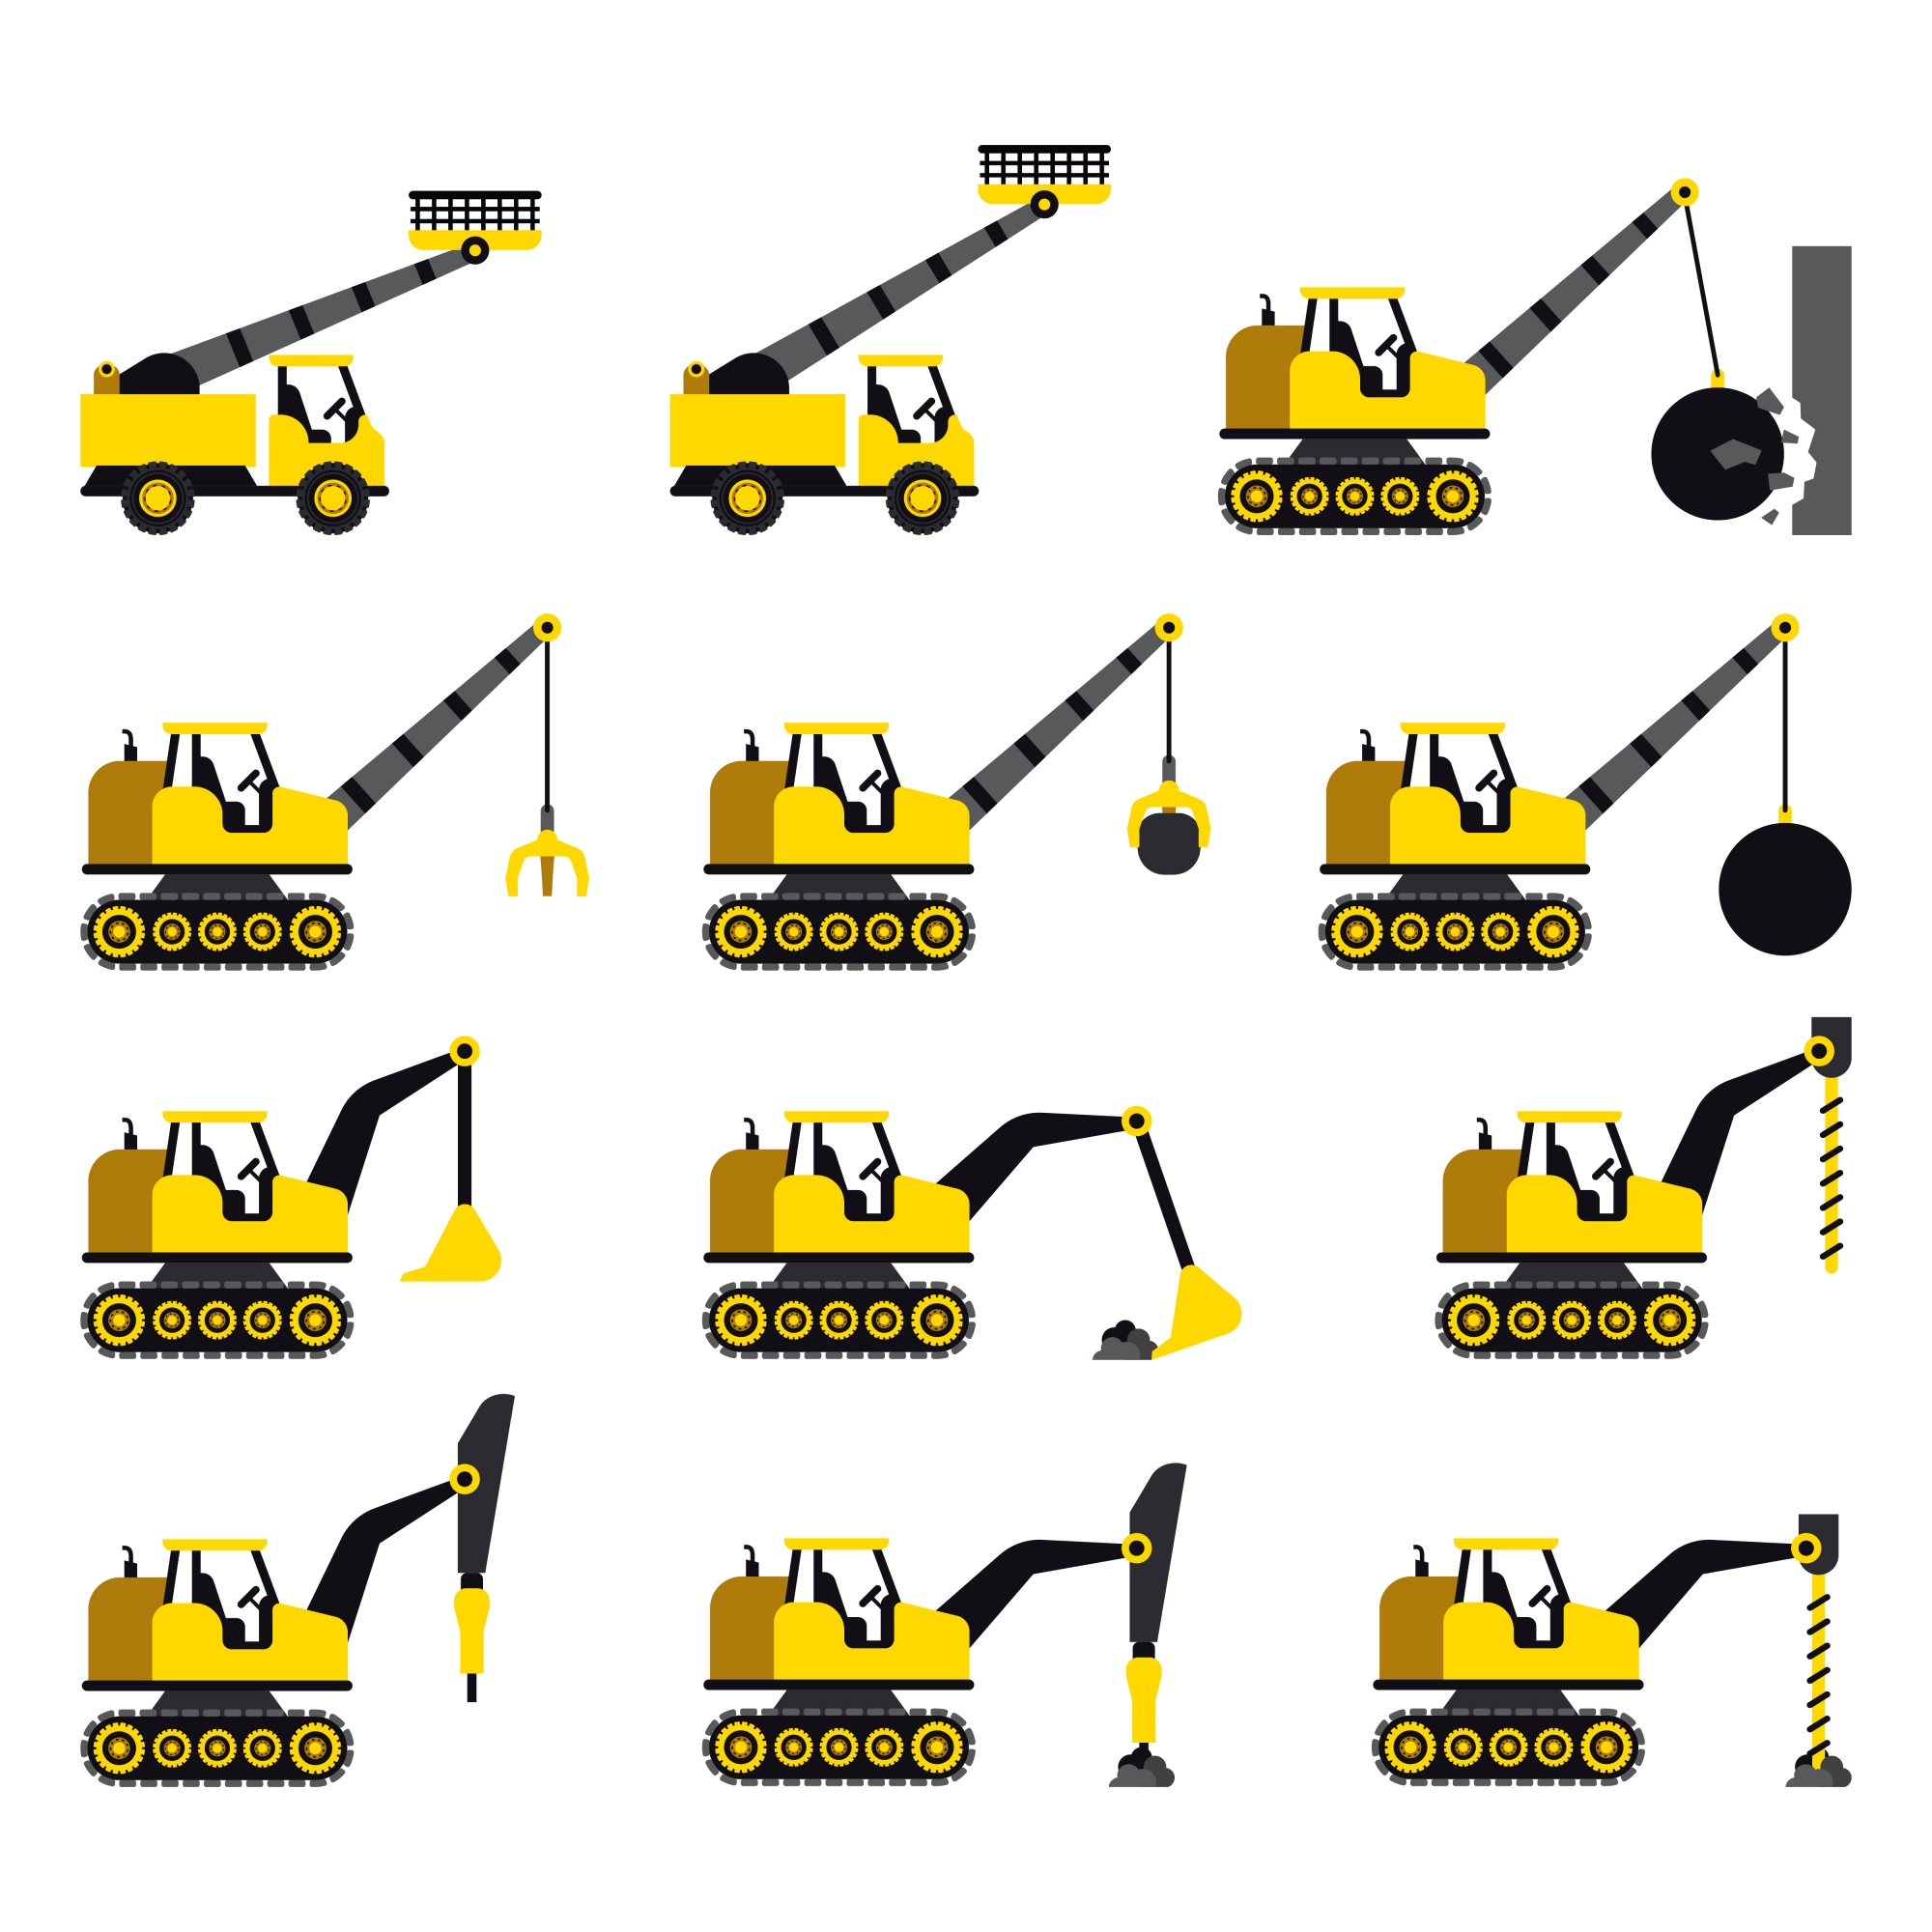 A set of construction vehicles icons in flat style